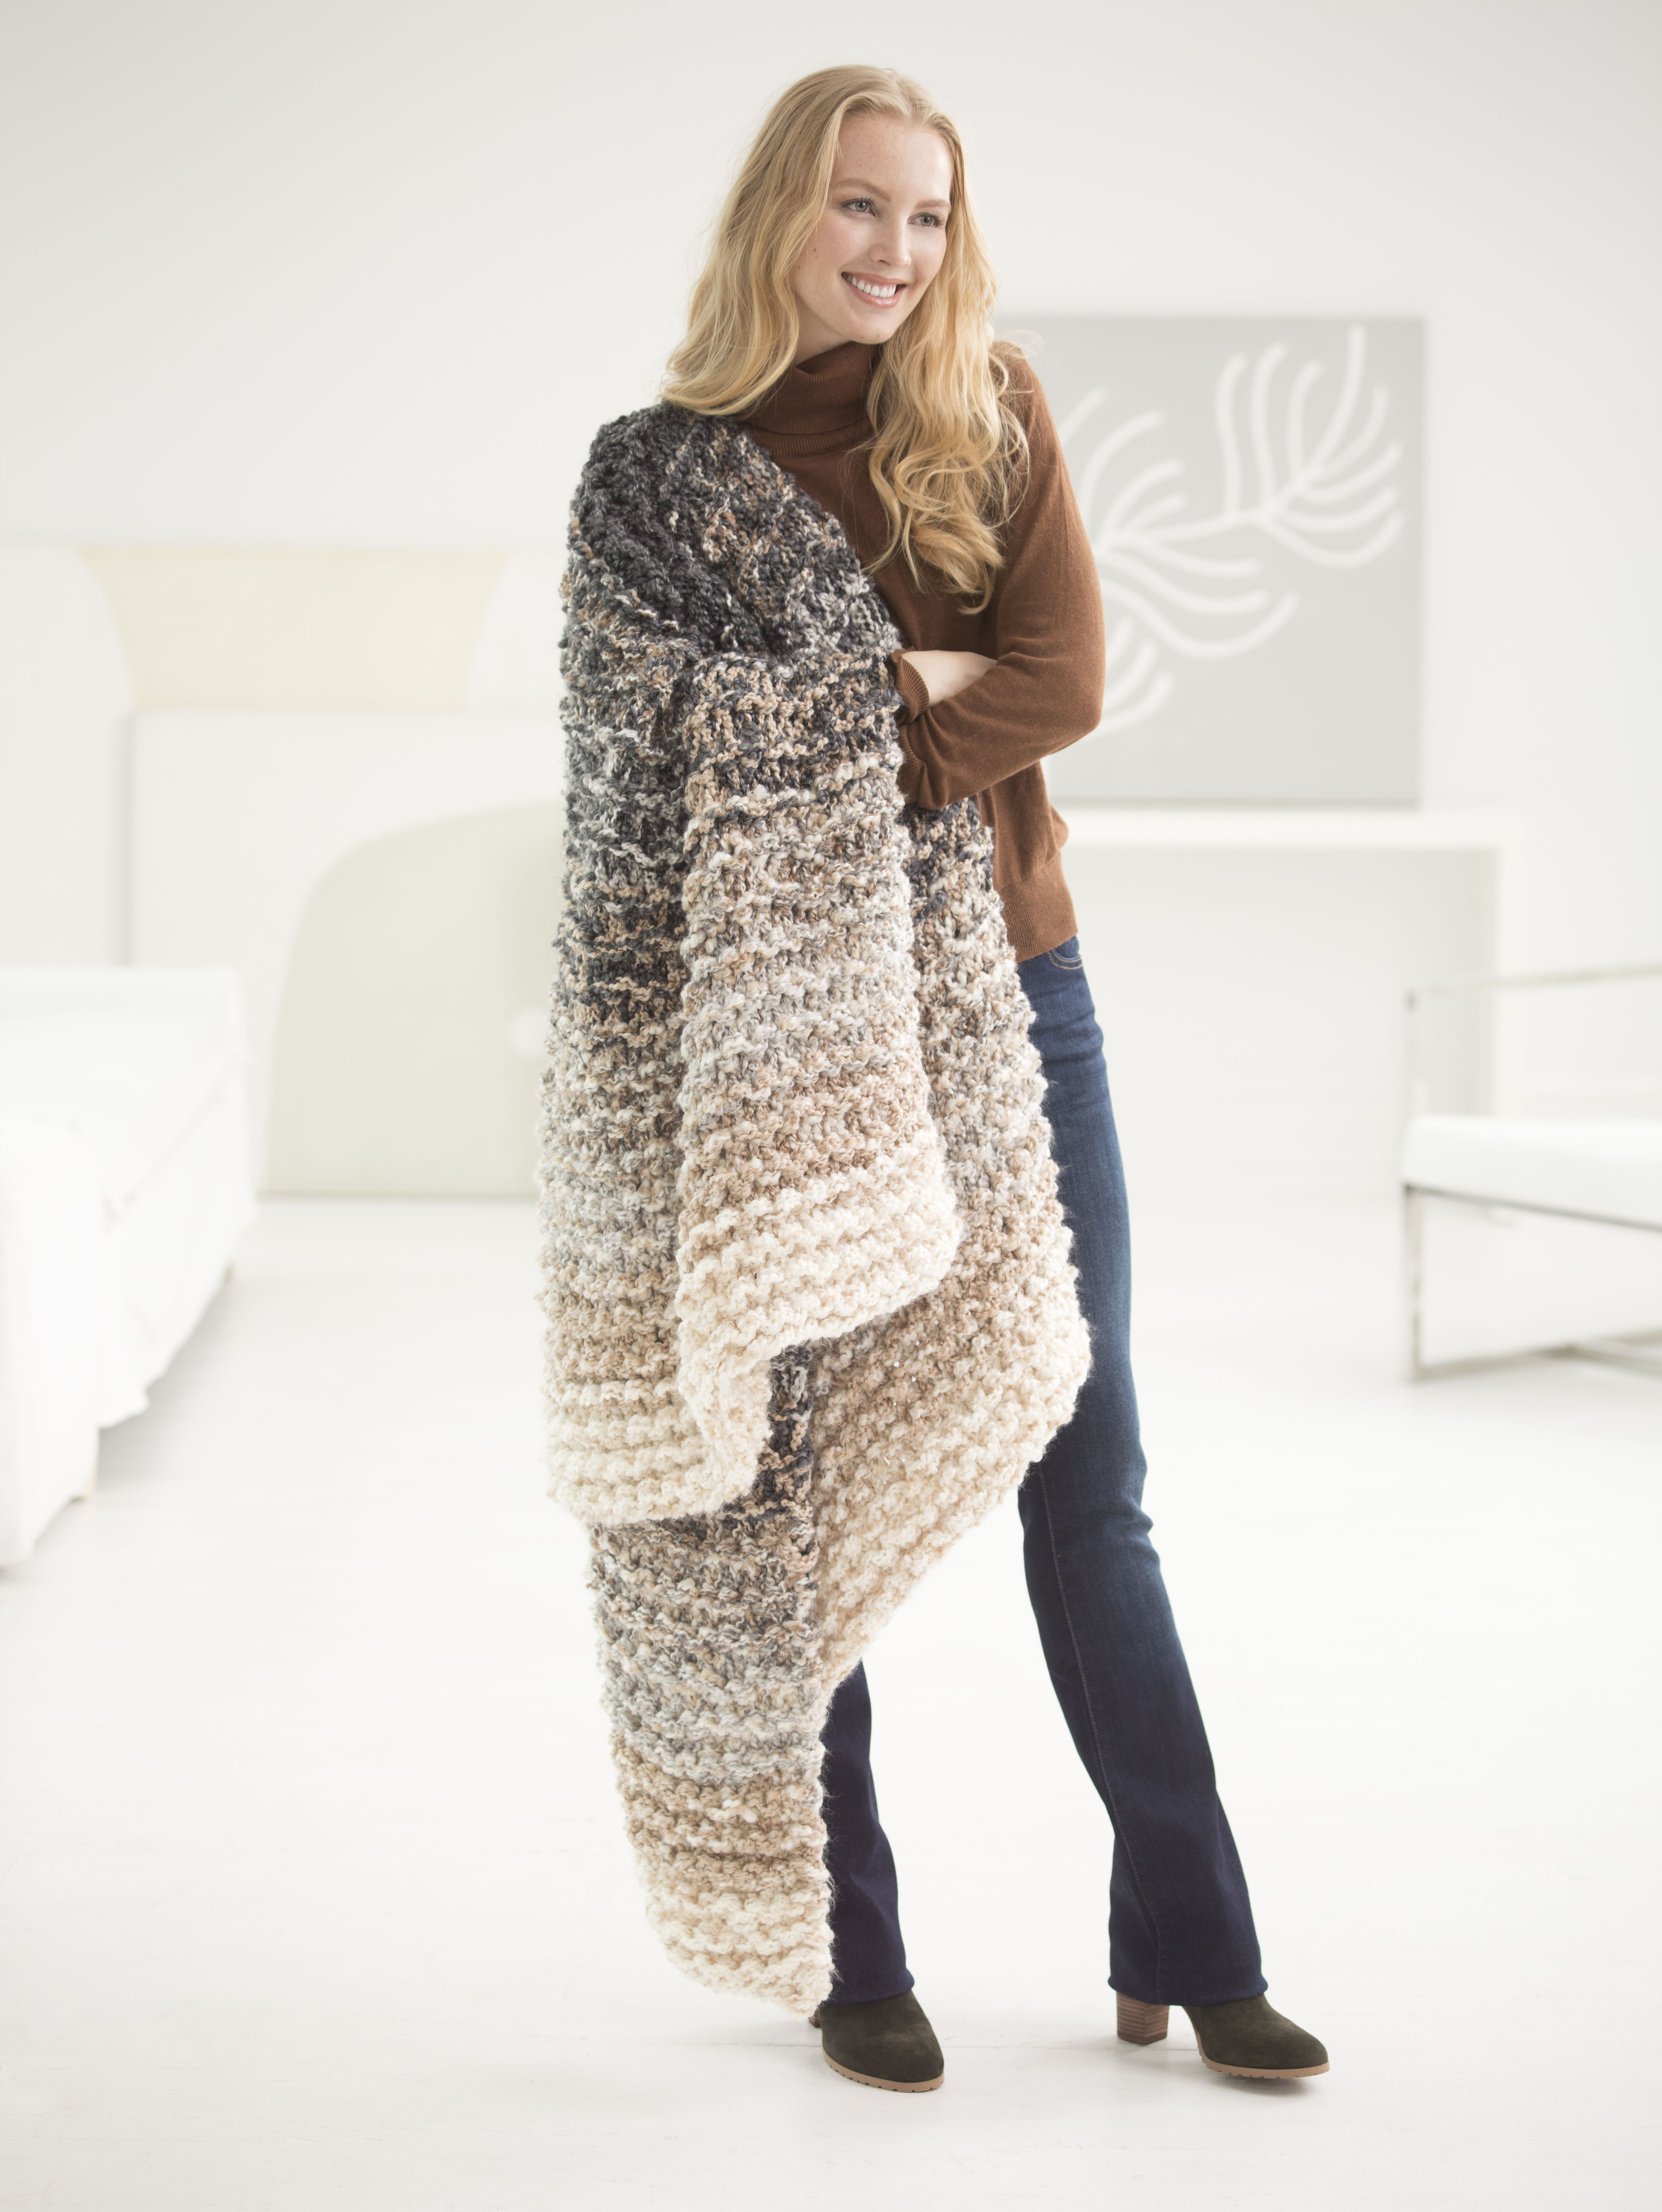 Make this trendy throw in just 8 hours with new lion brand super uses 4 strands of yarn together simple knit stitch across uses lion brand super circs circular knitting needles size 50 mm bankloansurffo Gallery